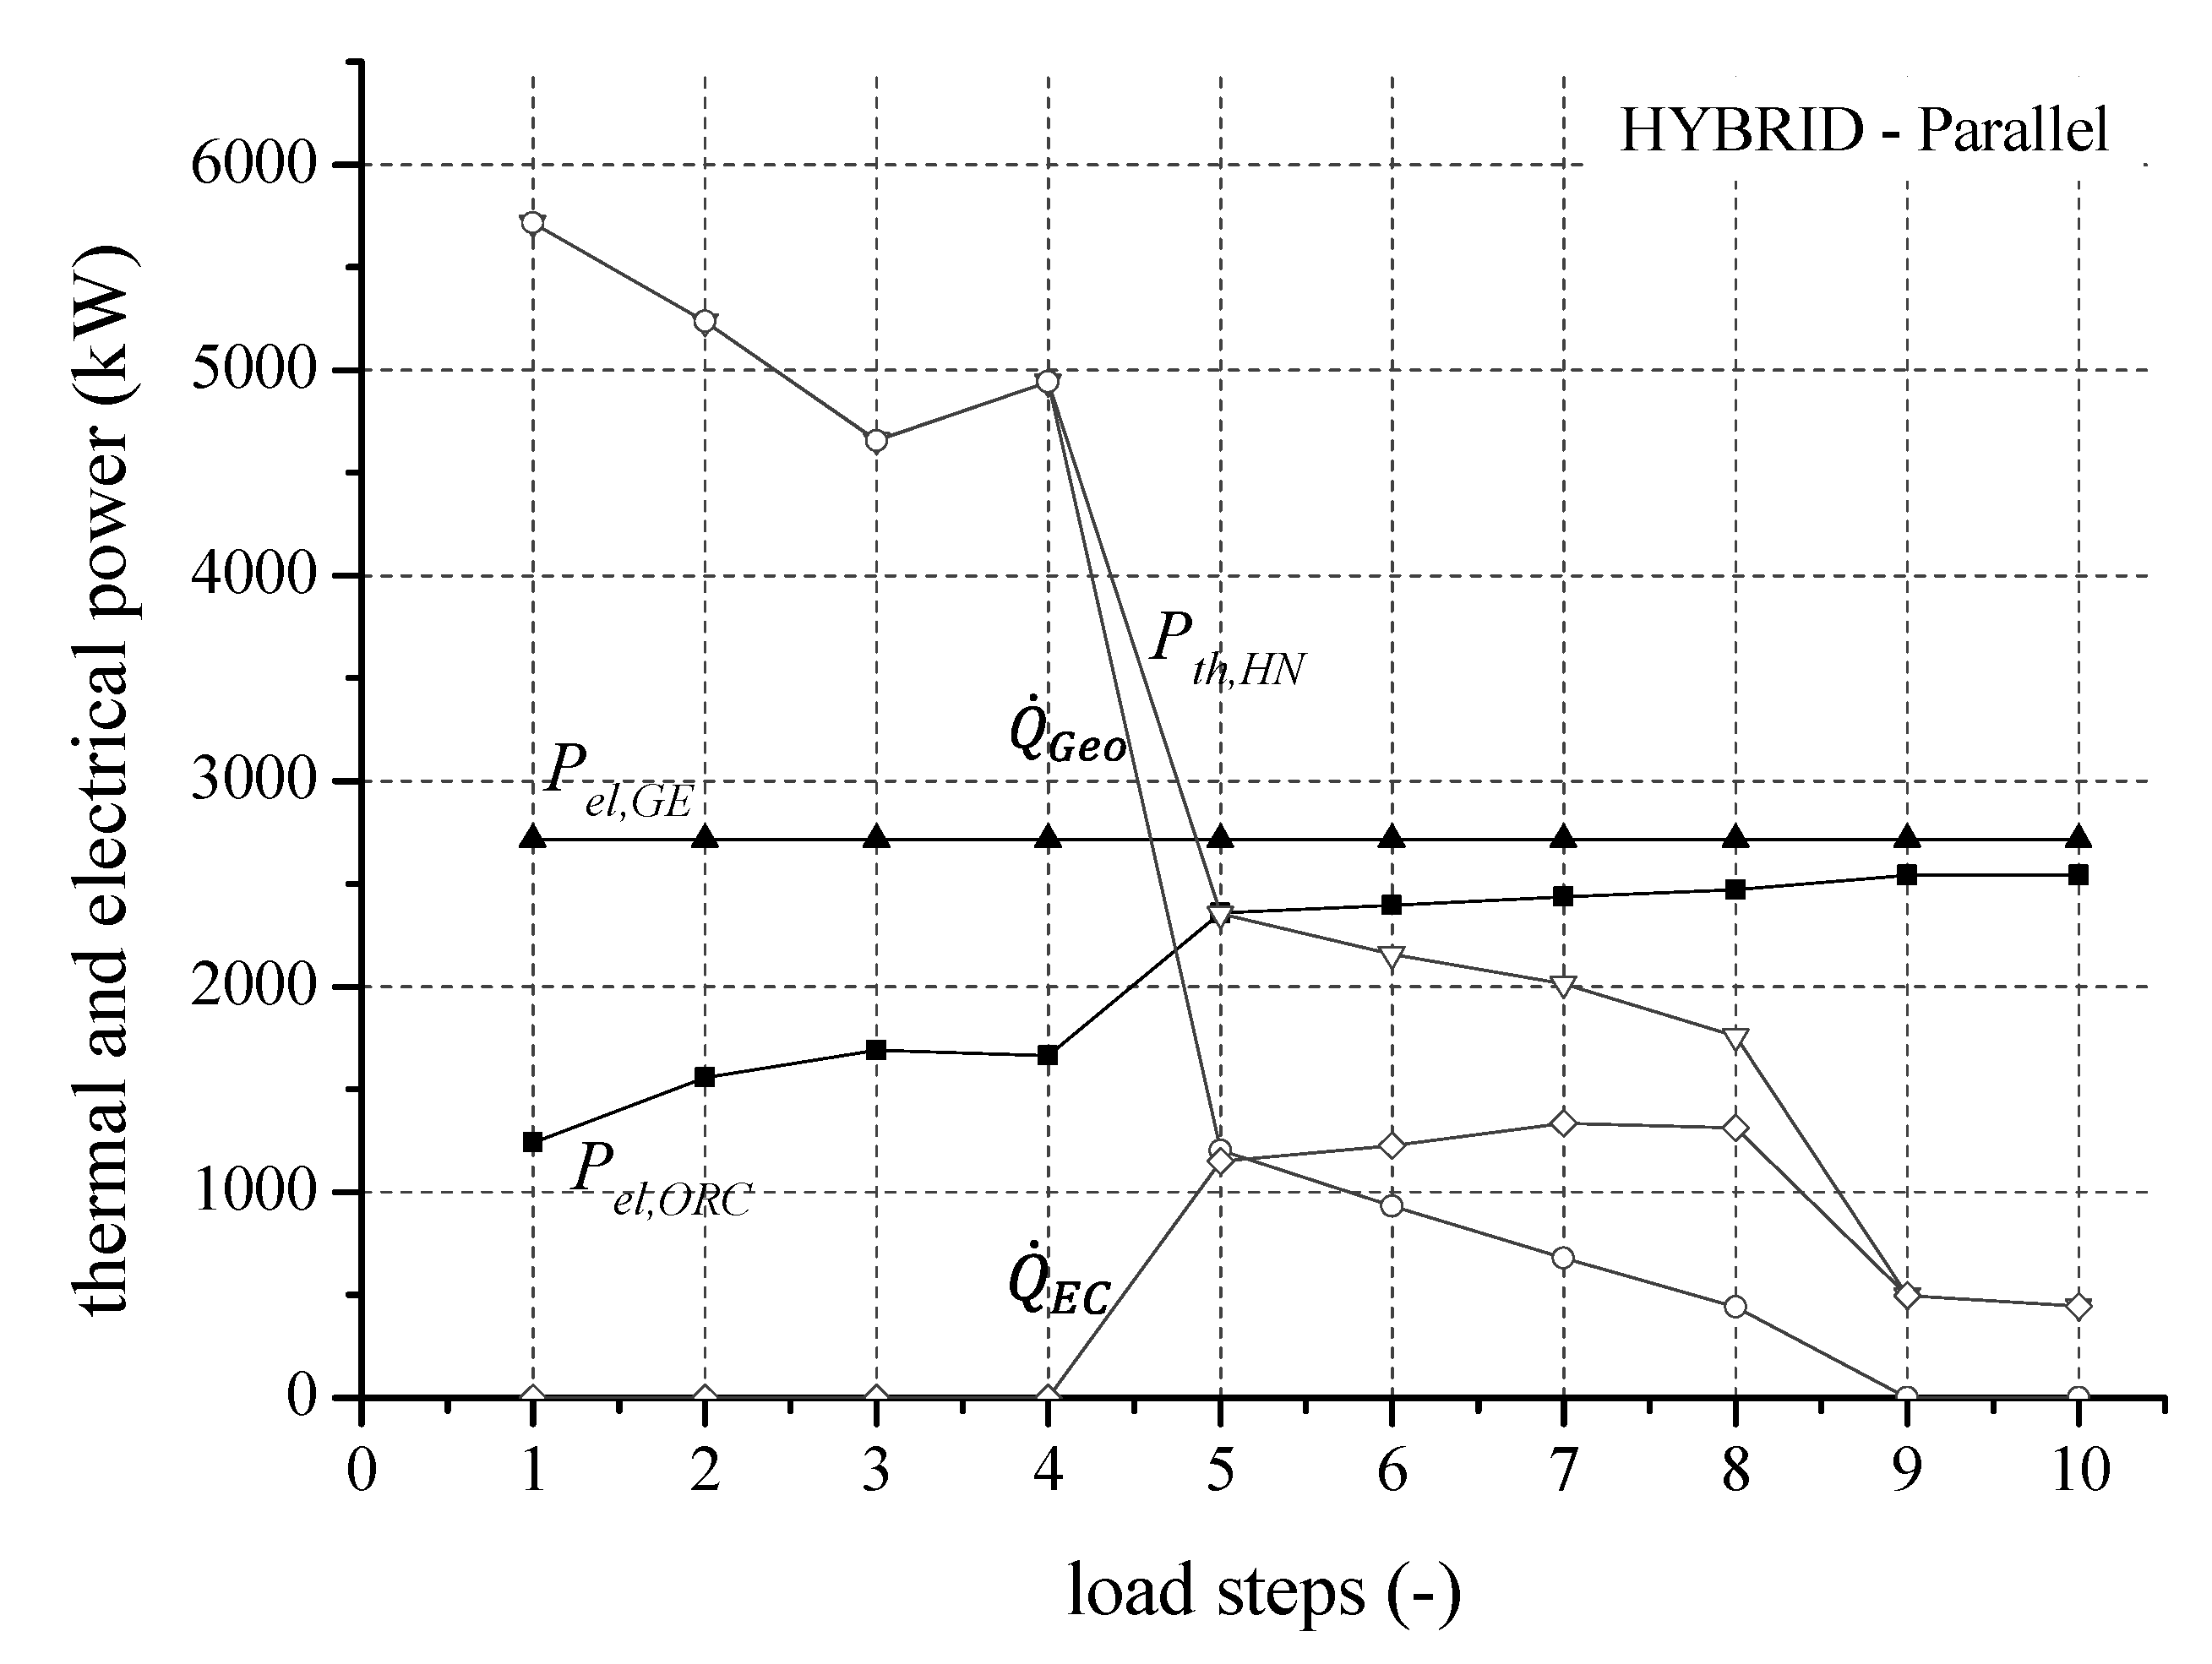 Energies Free Full Text Thermoeconomic Analysis Of Hybrid Power Plant Diagram Pictures No